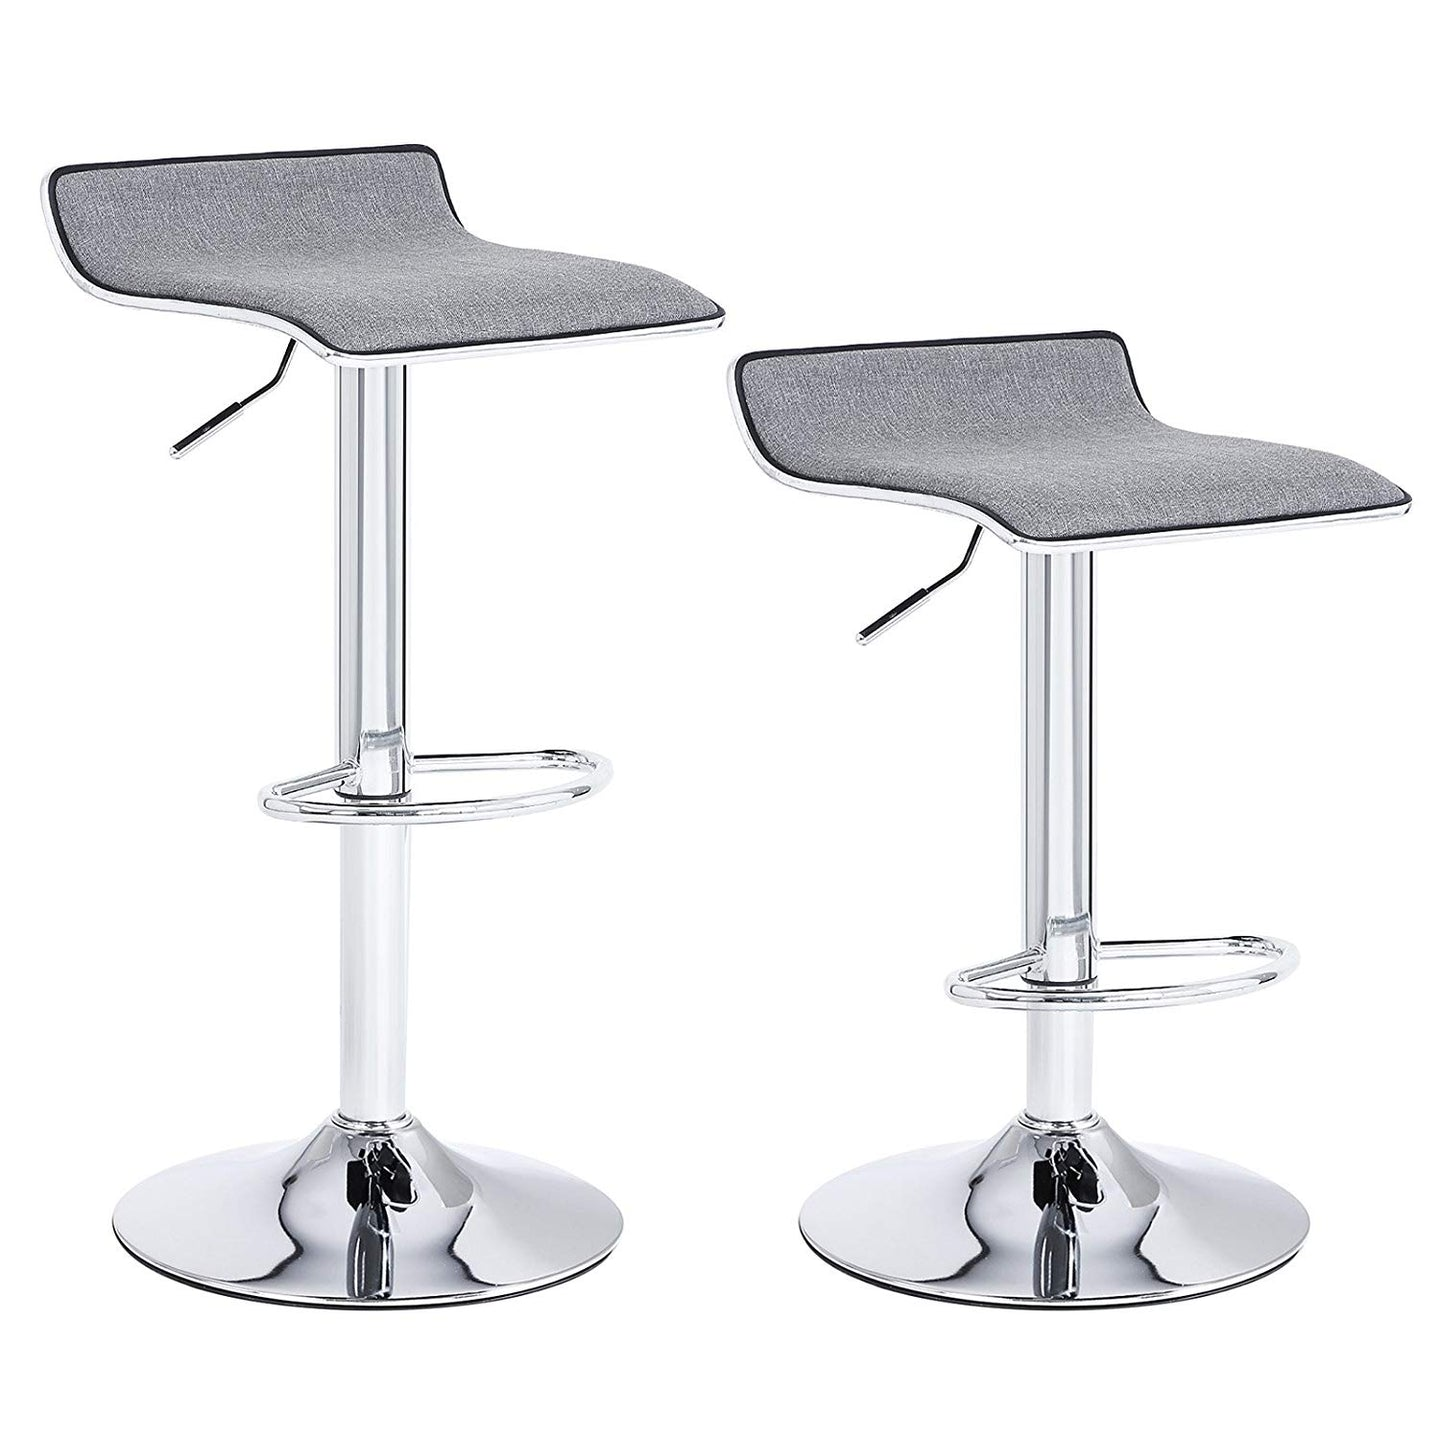 Songmics ULJB12G Gray Steel Finish 2 Piece Barstool